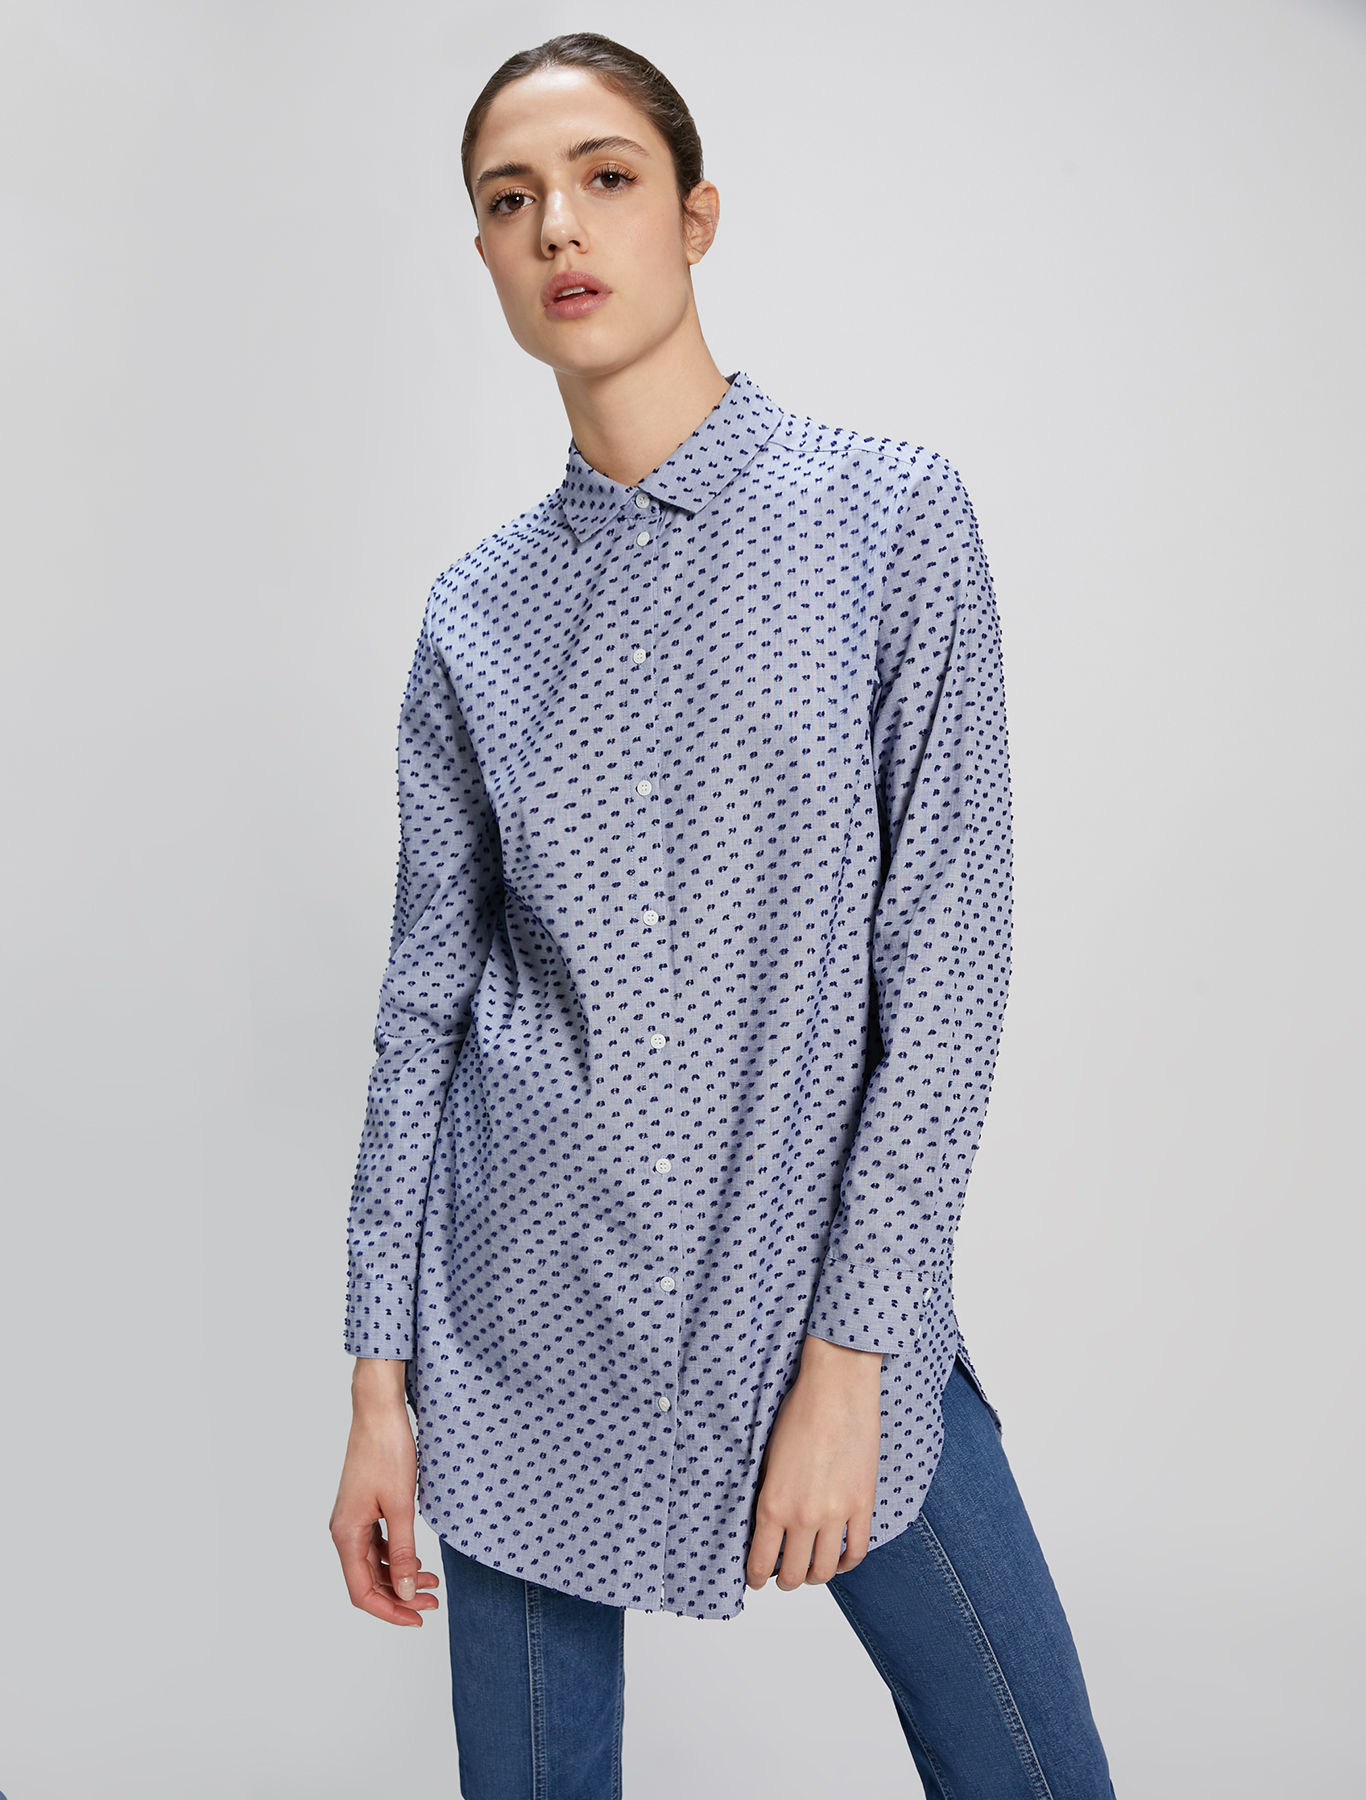 Fil coupé cotton shirt - light blue pattern - pennyblack